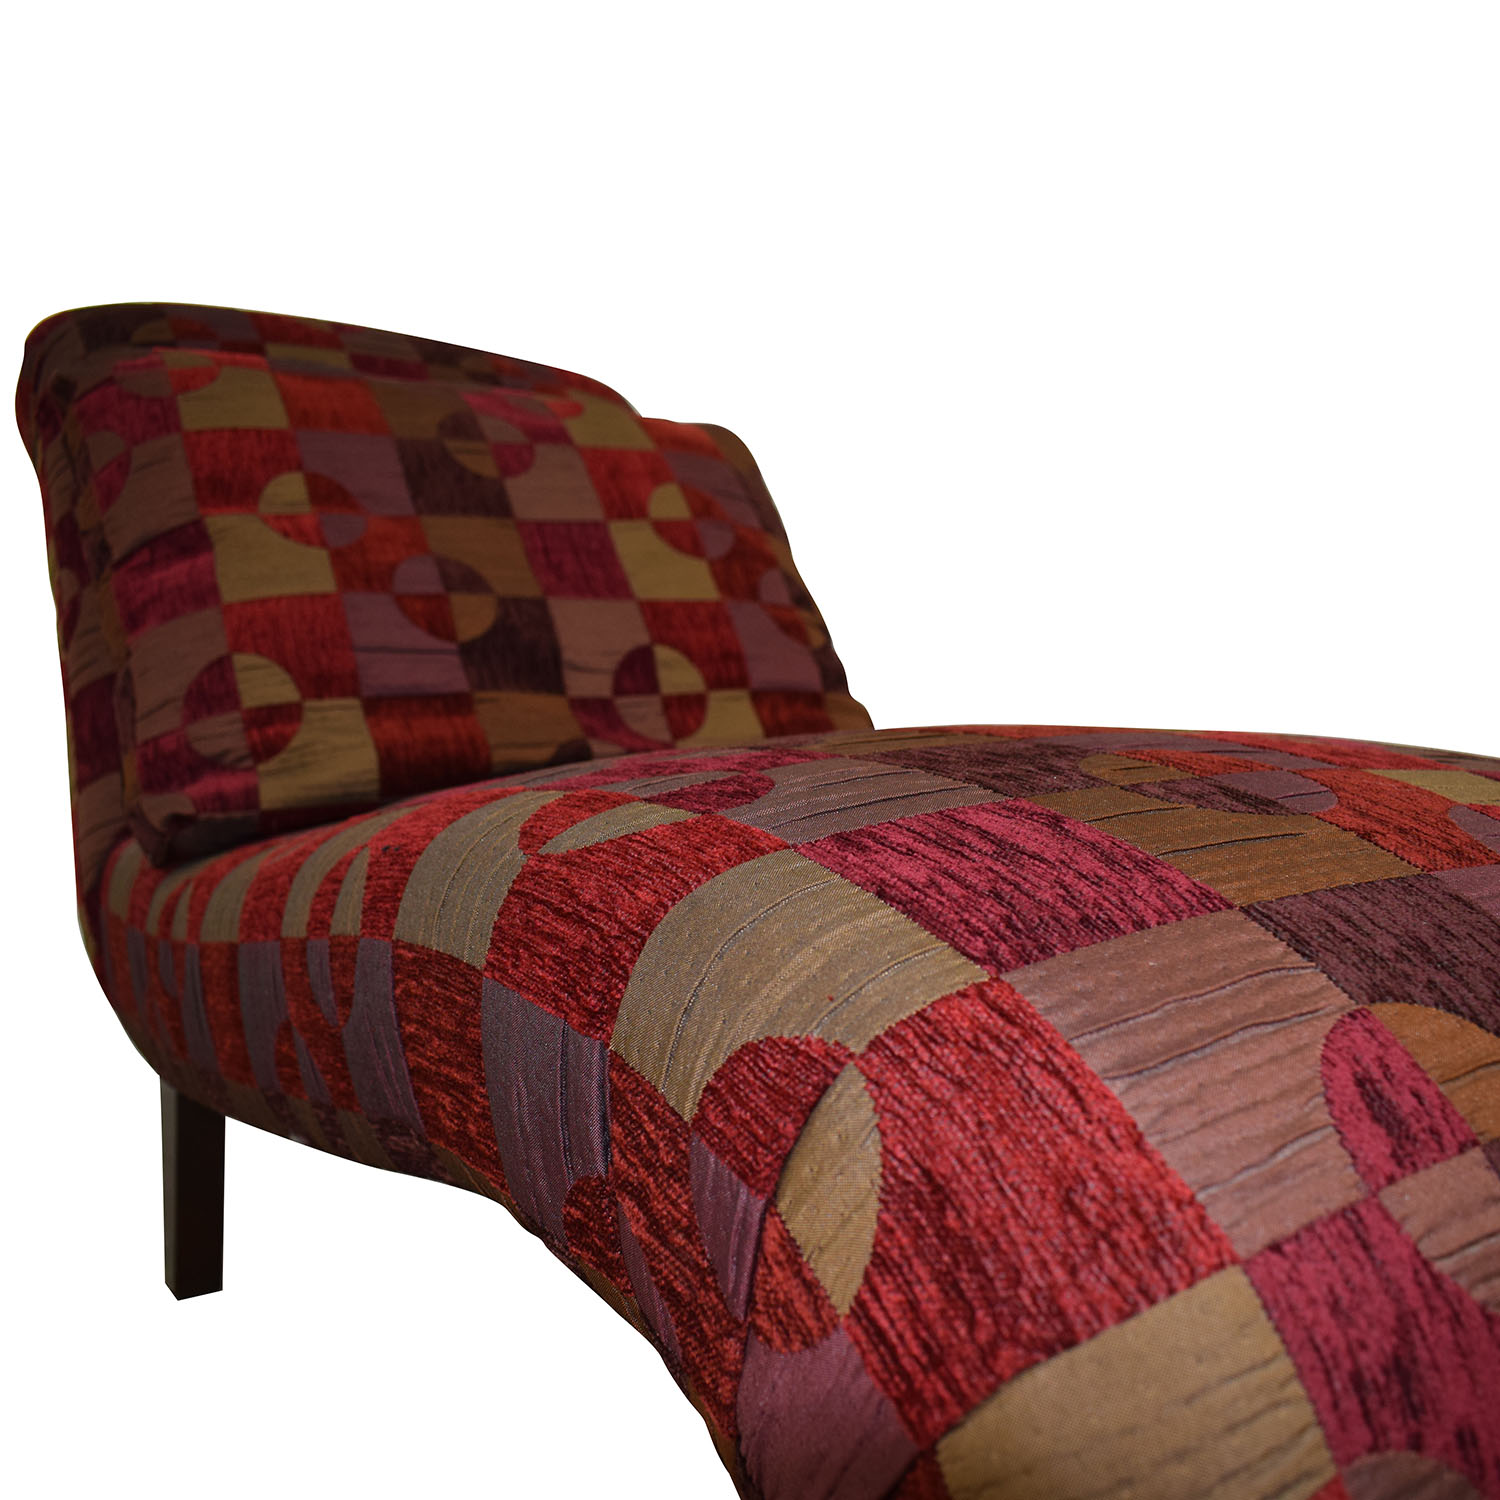 48 Off Z Gallerie Z Gallerie Multi Colored Chaise